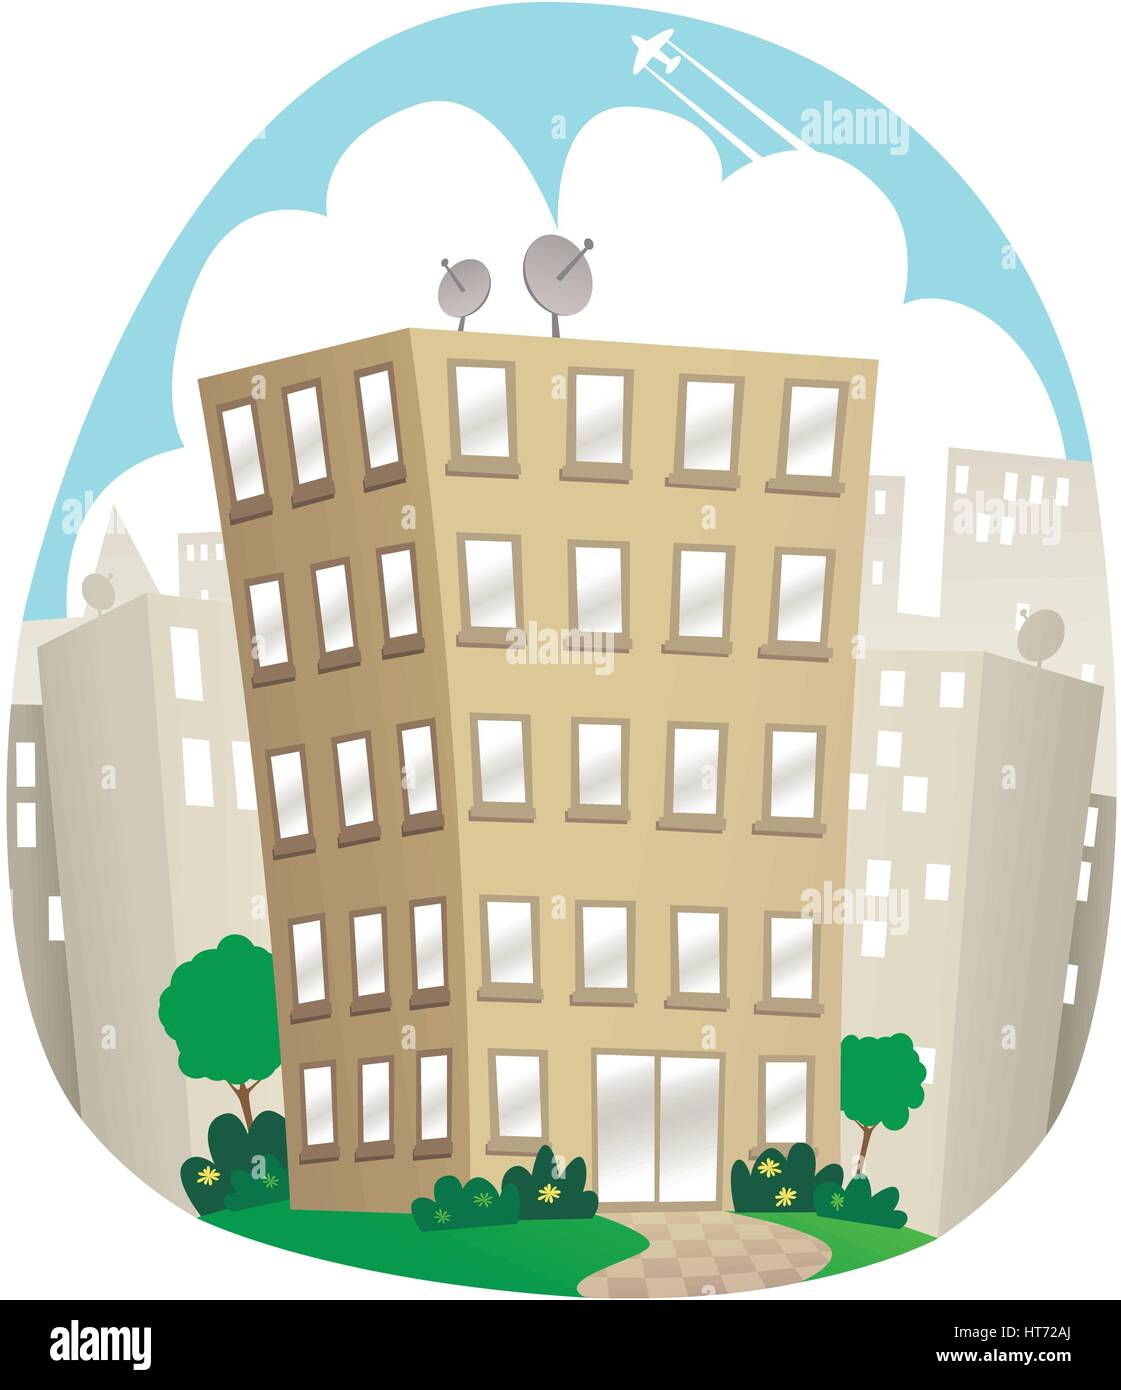 An illustration of a small office block in a city centre. - Stock Vector